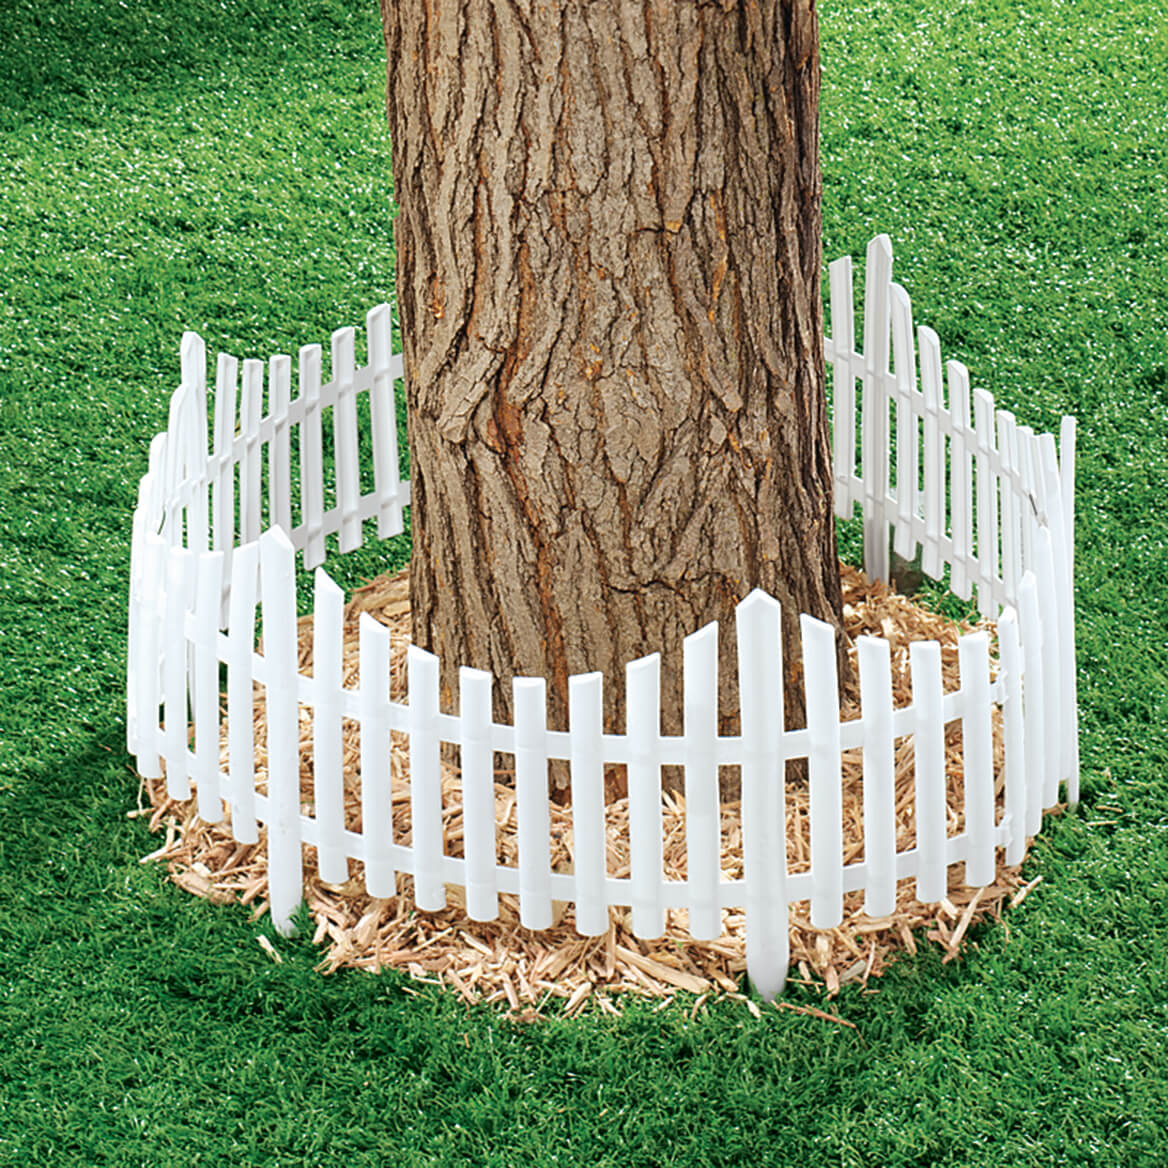 Flexible Fence Edging, Set of 4-366635